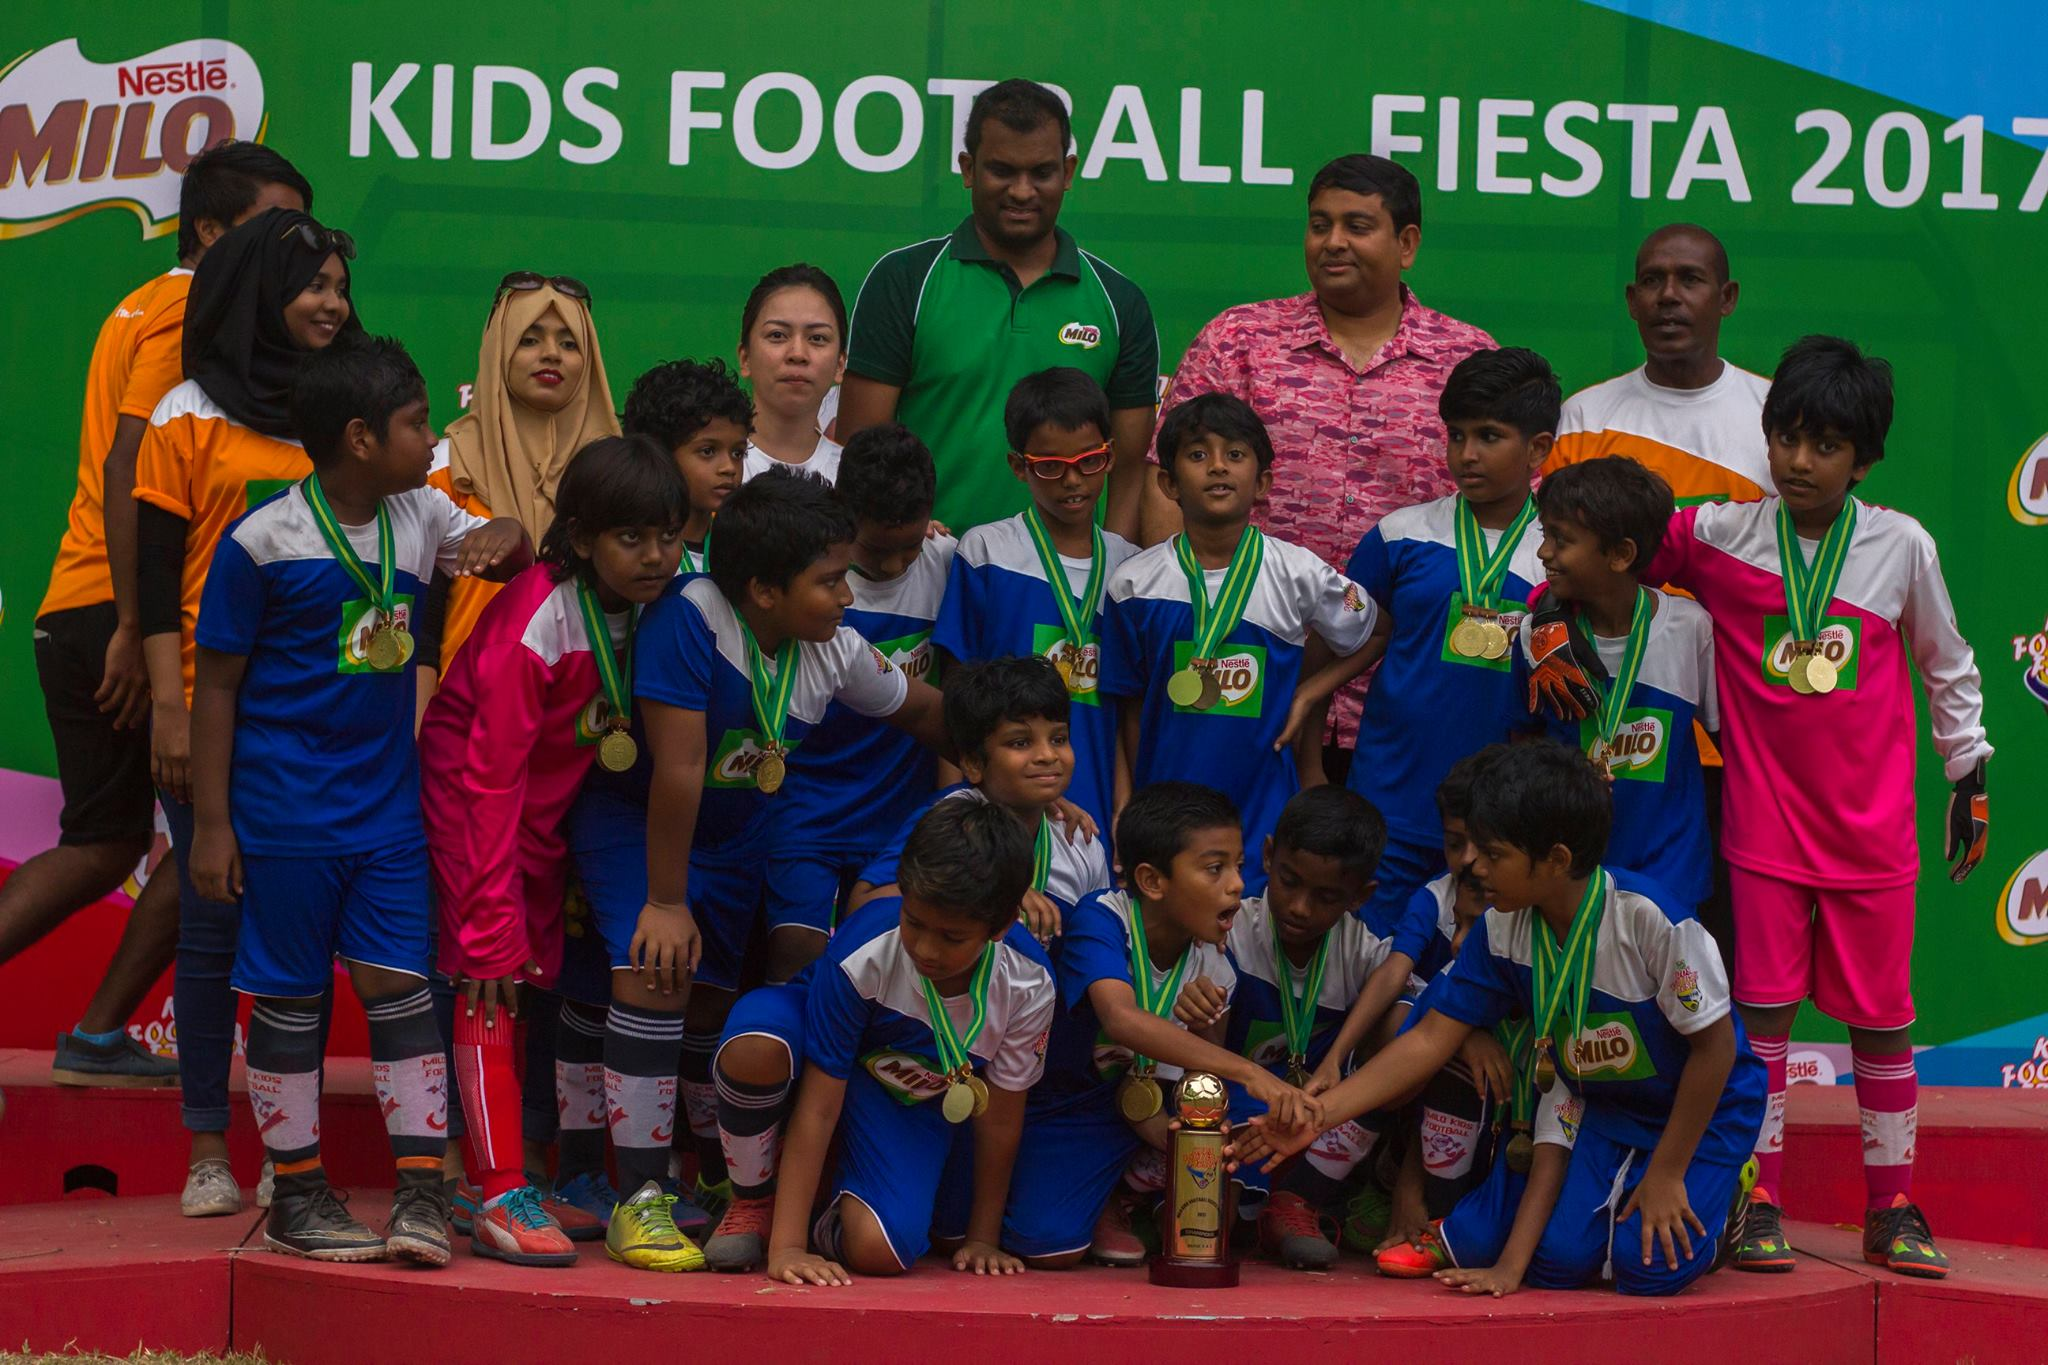 Milo Kids Football Fiesta (Grade 3)